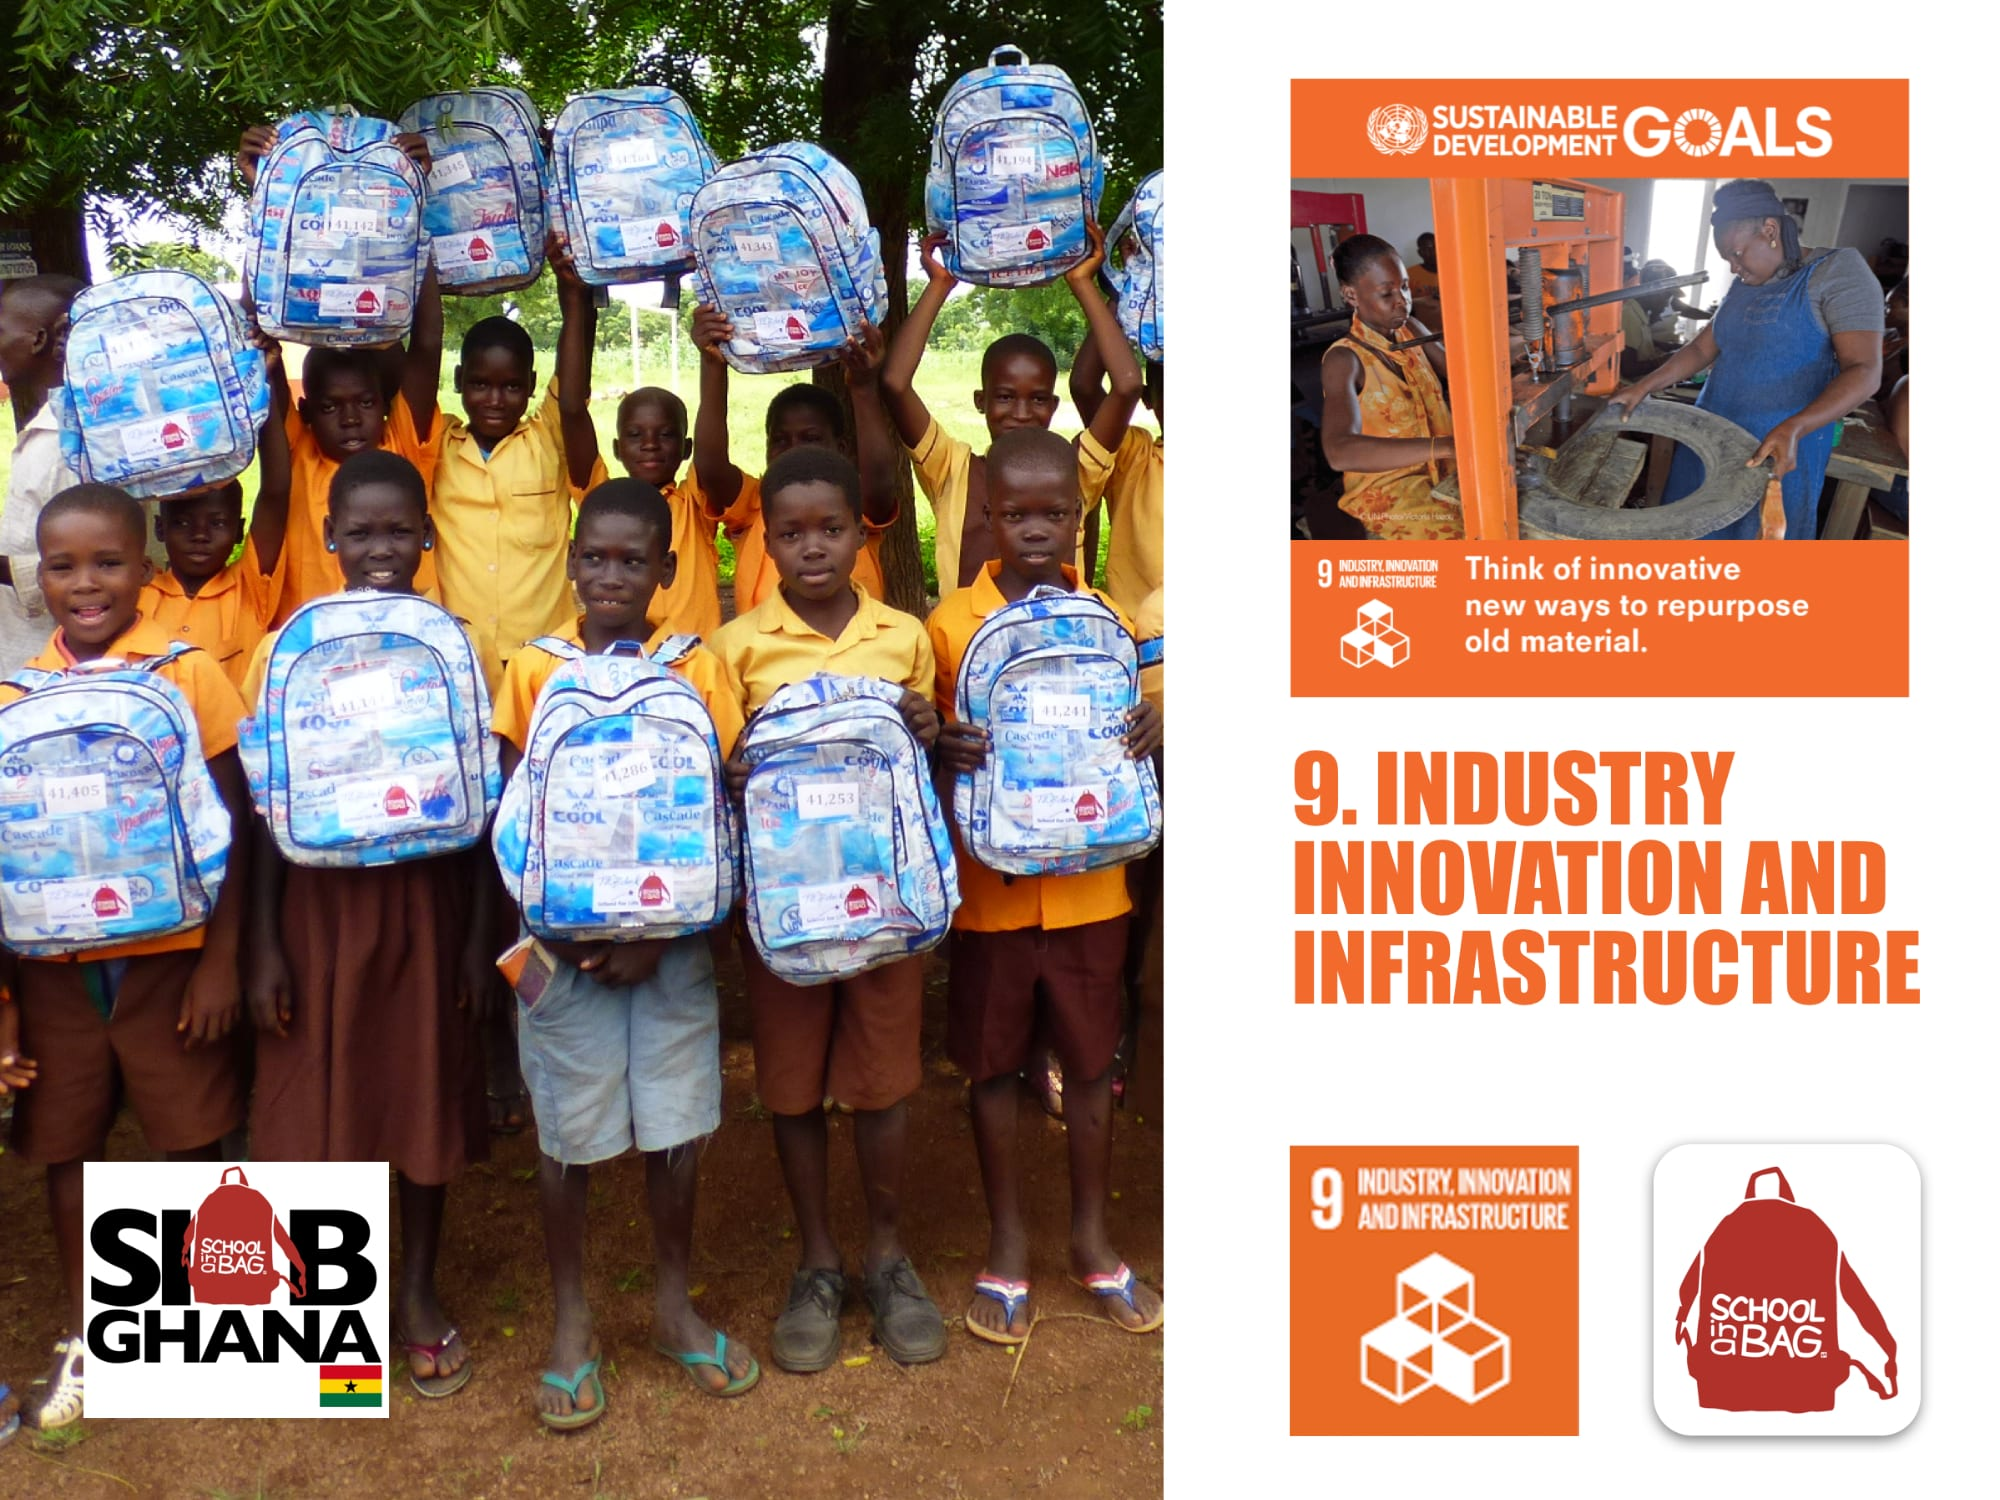 SDG Industry Innovation and Infrastructure